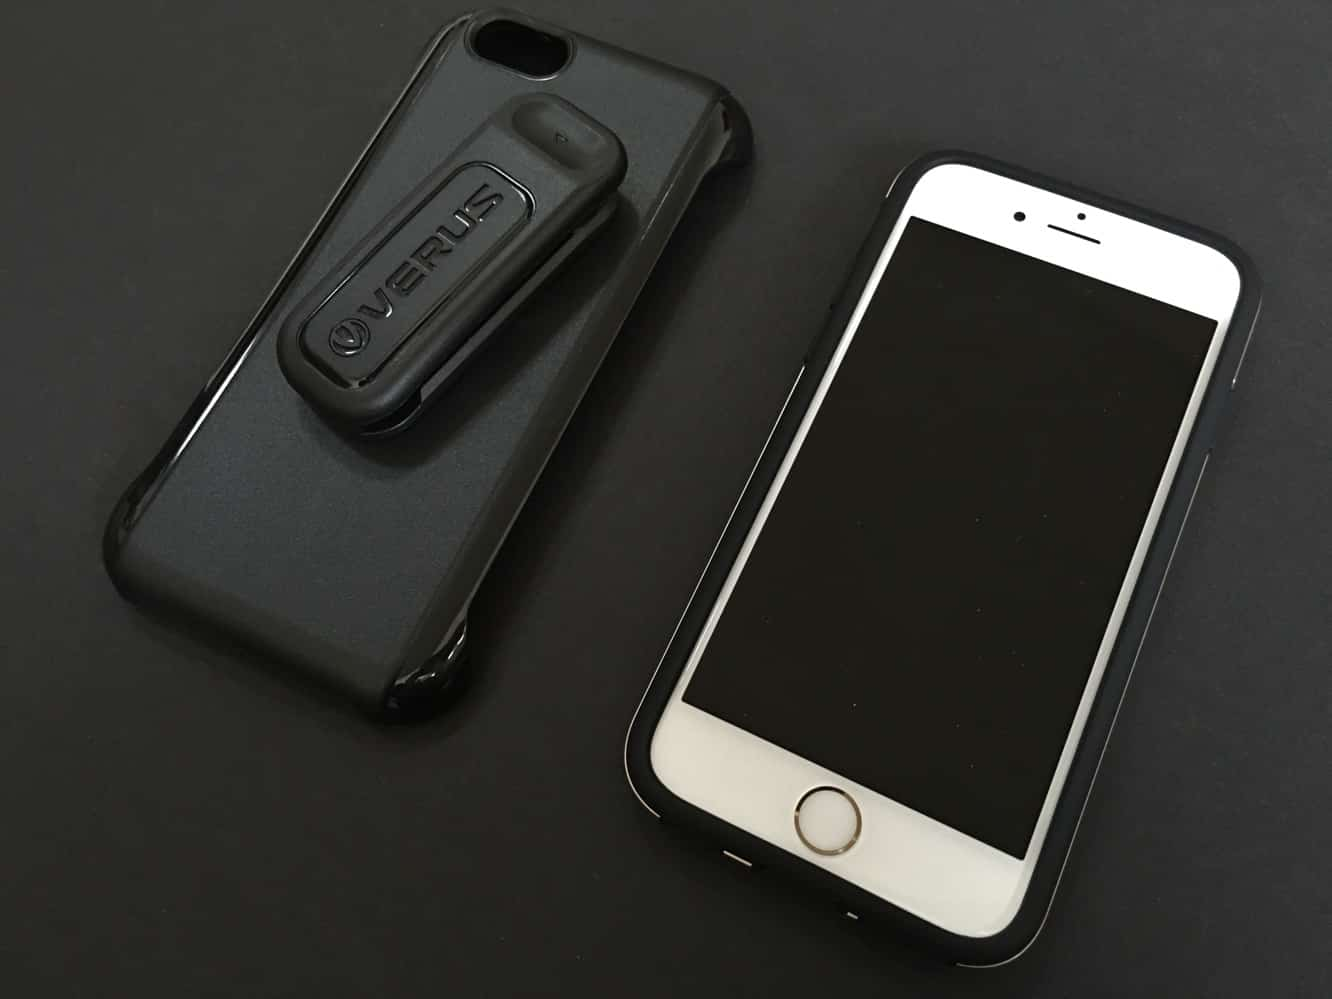 Review: VRS Design Crystal Bumper, High Pro Shield + Verge Active for iPhone 6/6s